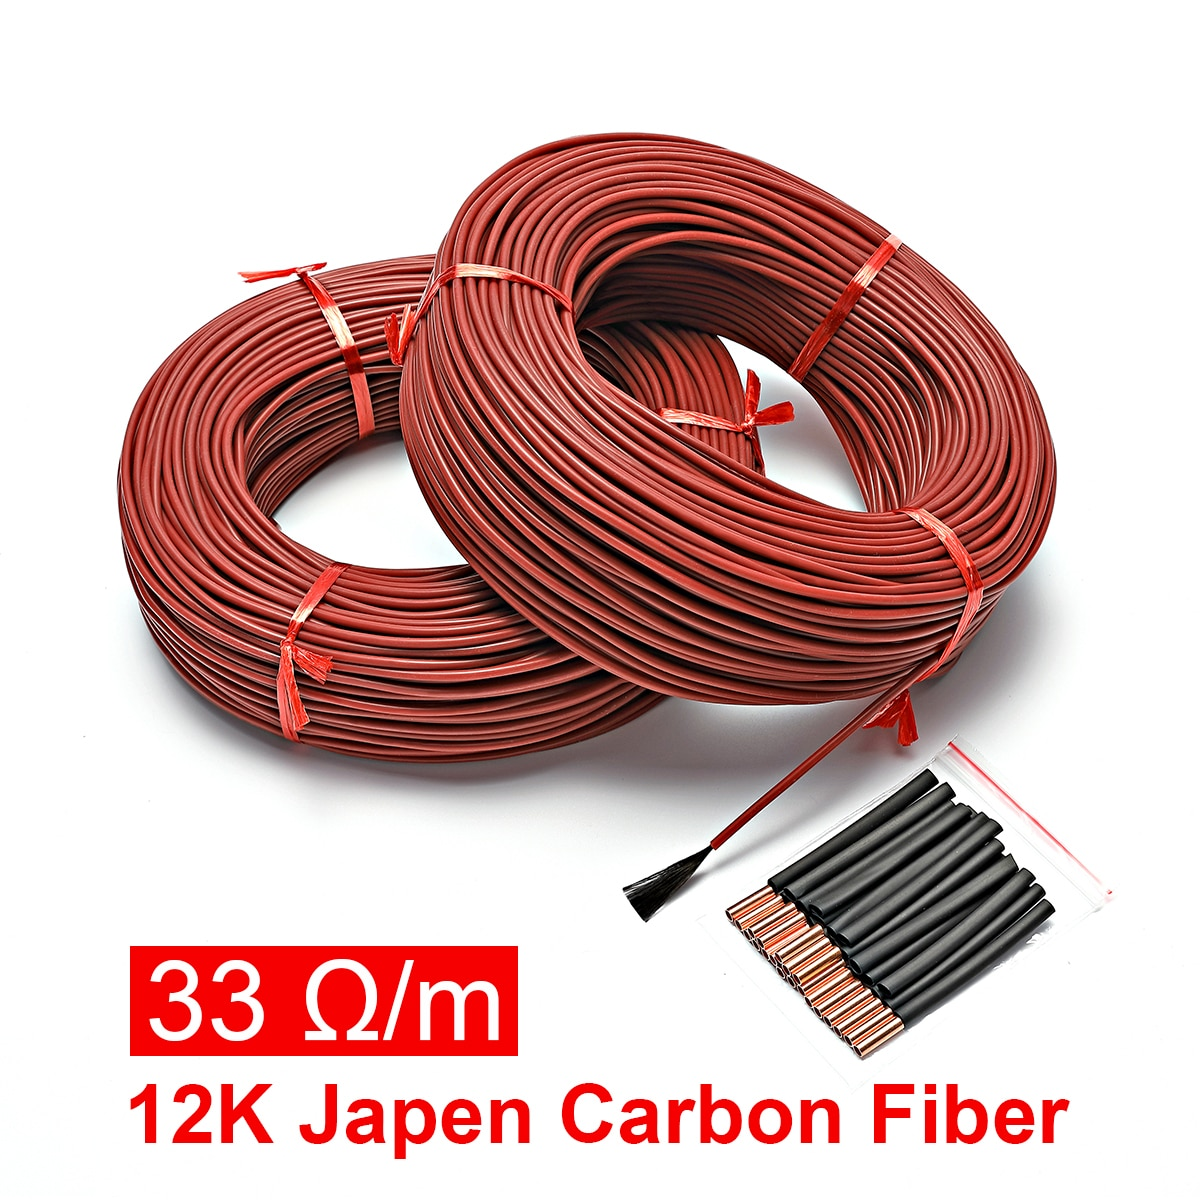 100 Meters 33 Ohm/m 3 mm Upgrade Silicone rubber Jacket Carbon Fiber Heating wire warm floor cable